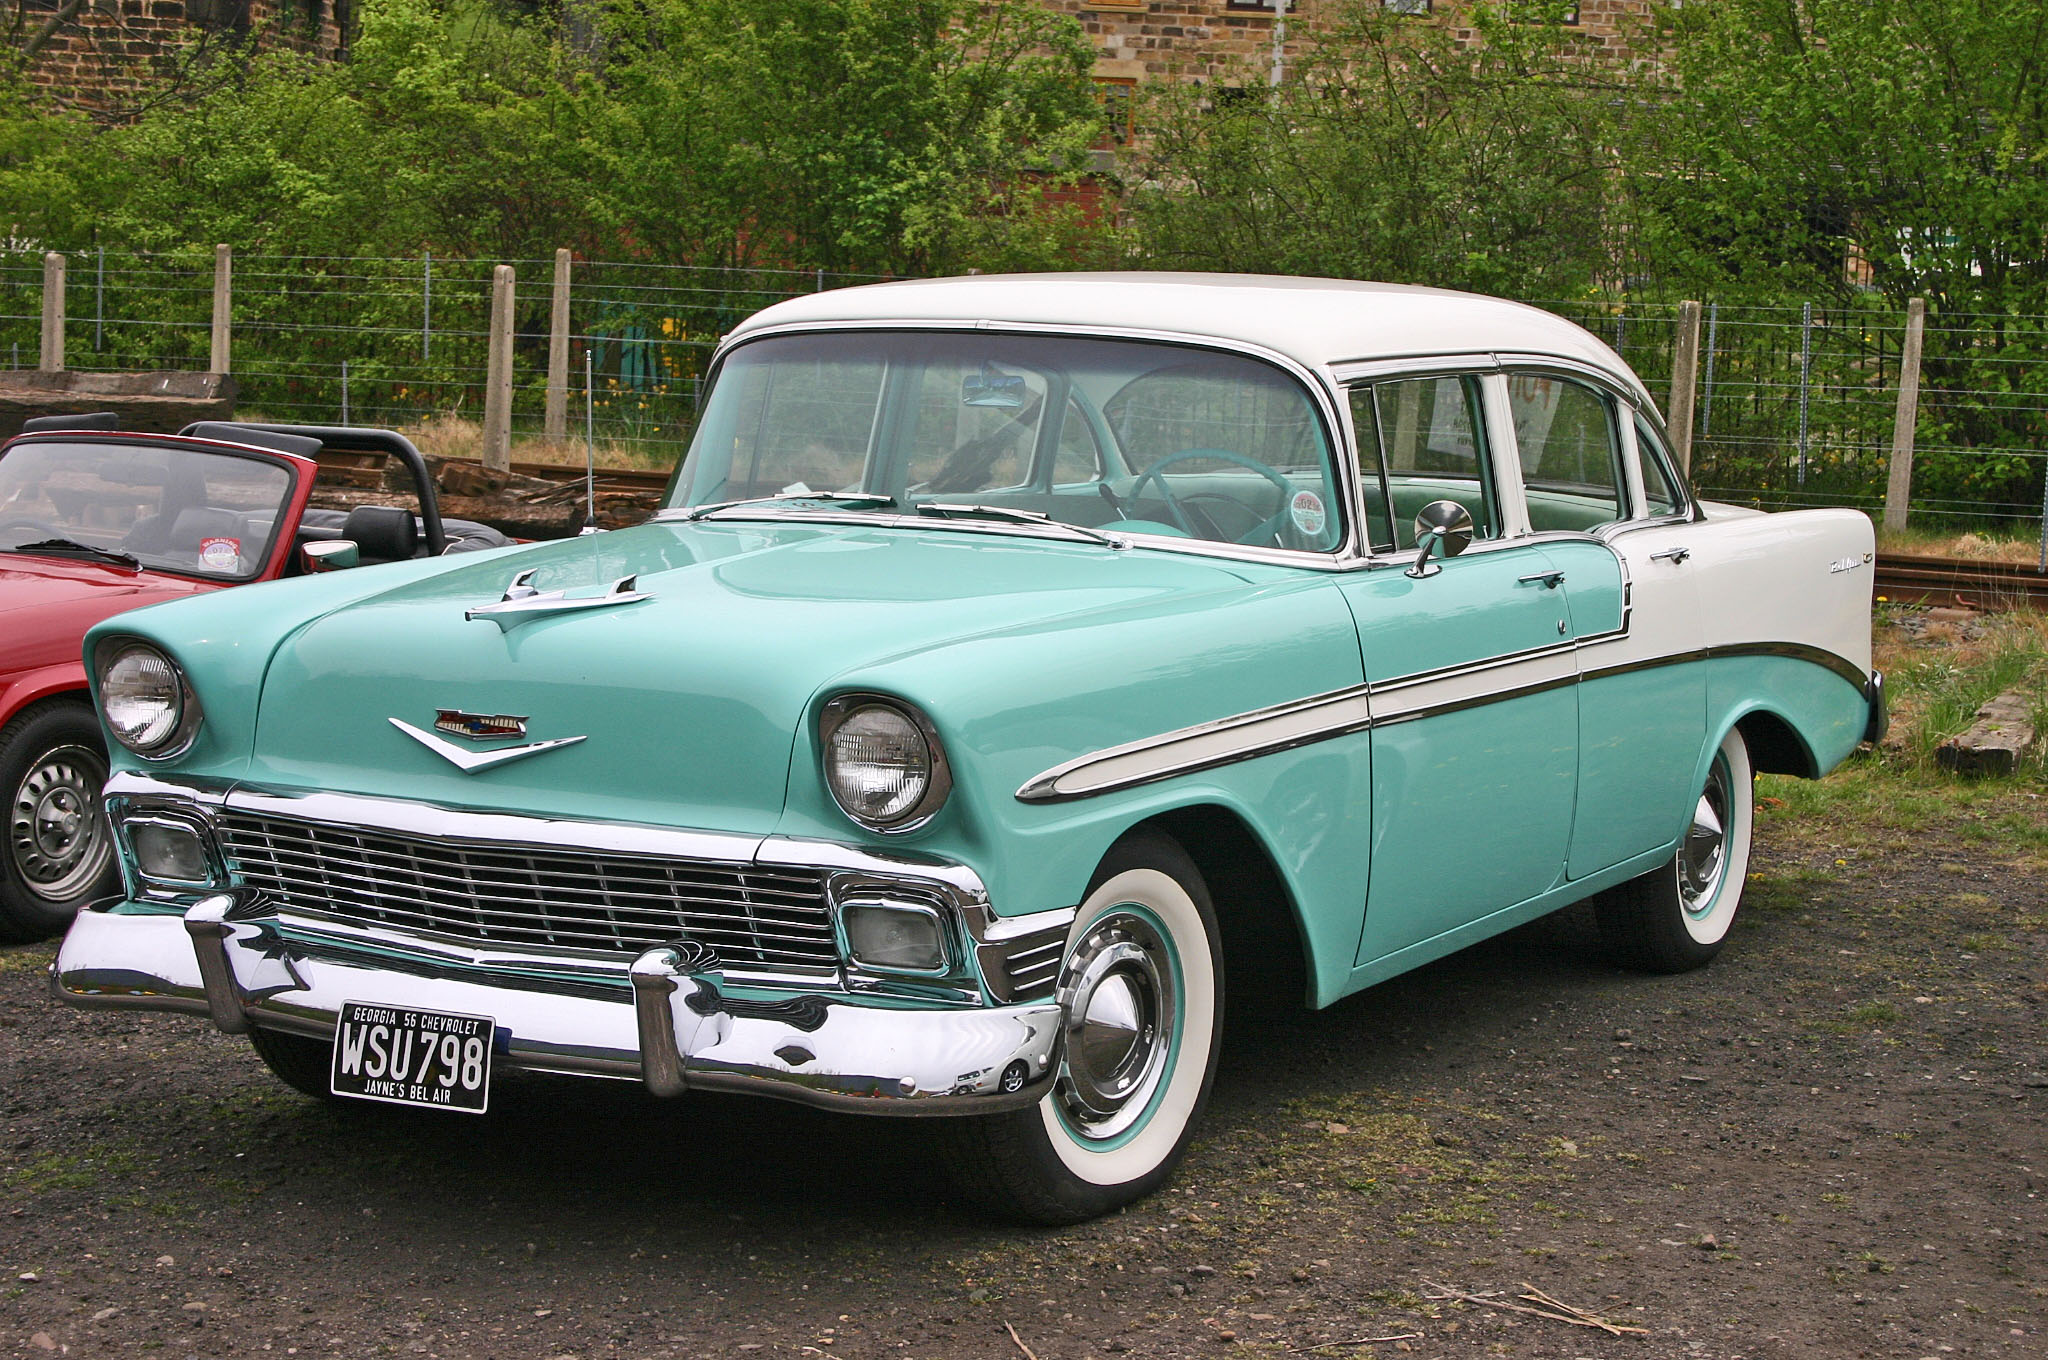 Chevrolet_Bel_Air_1956_4door_Sedan_front.jpg